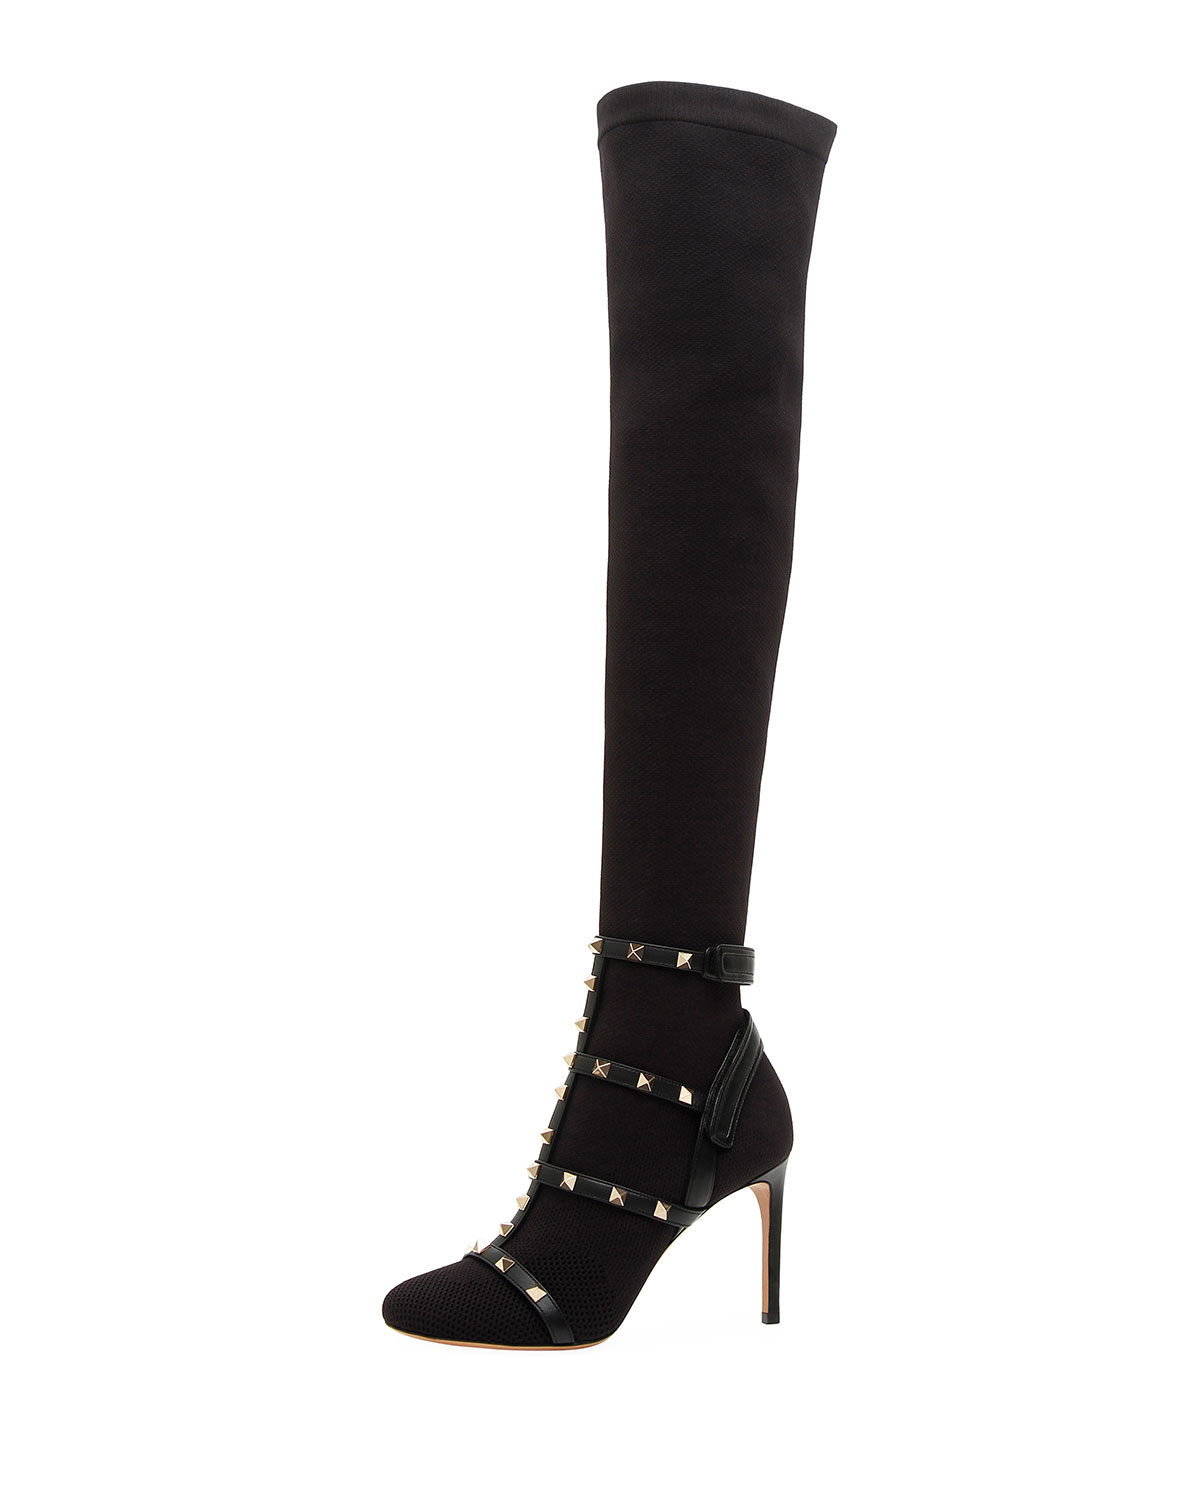 7151c166c82 Valentino Garavani Rockstud BodyTech Over-The-Knee Boot